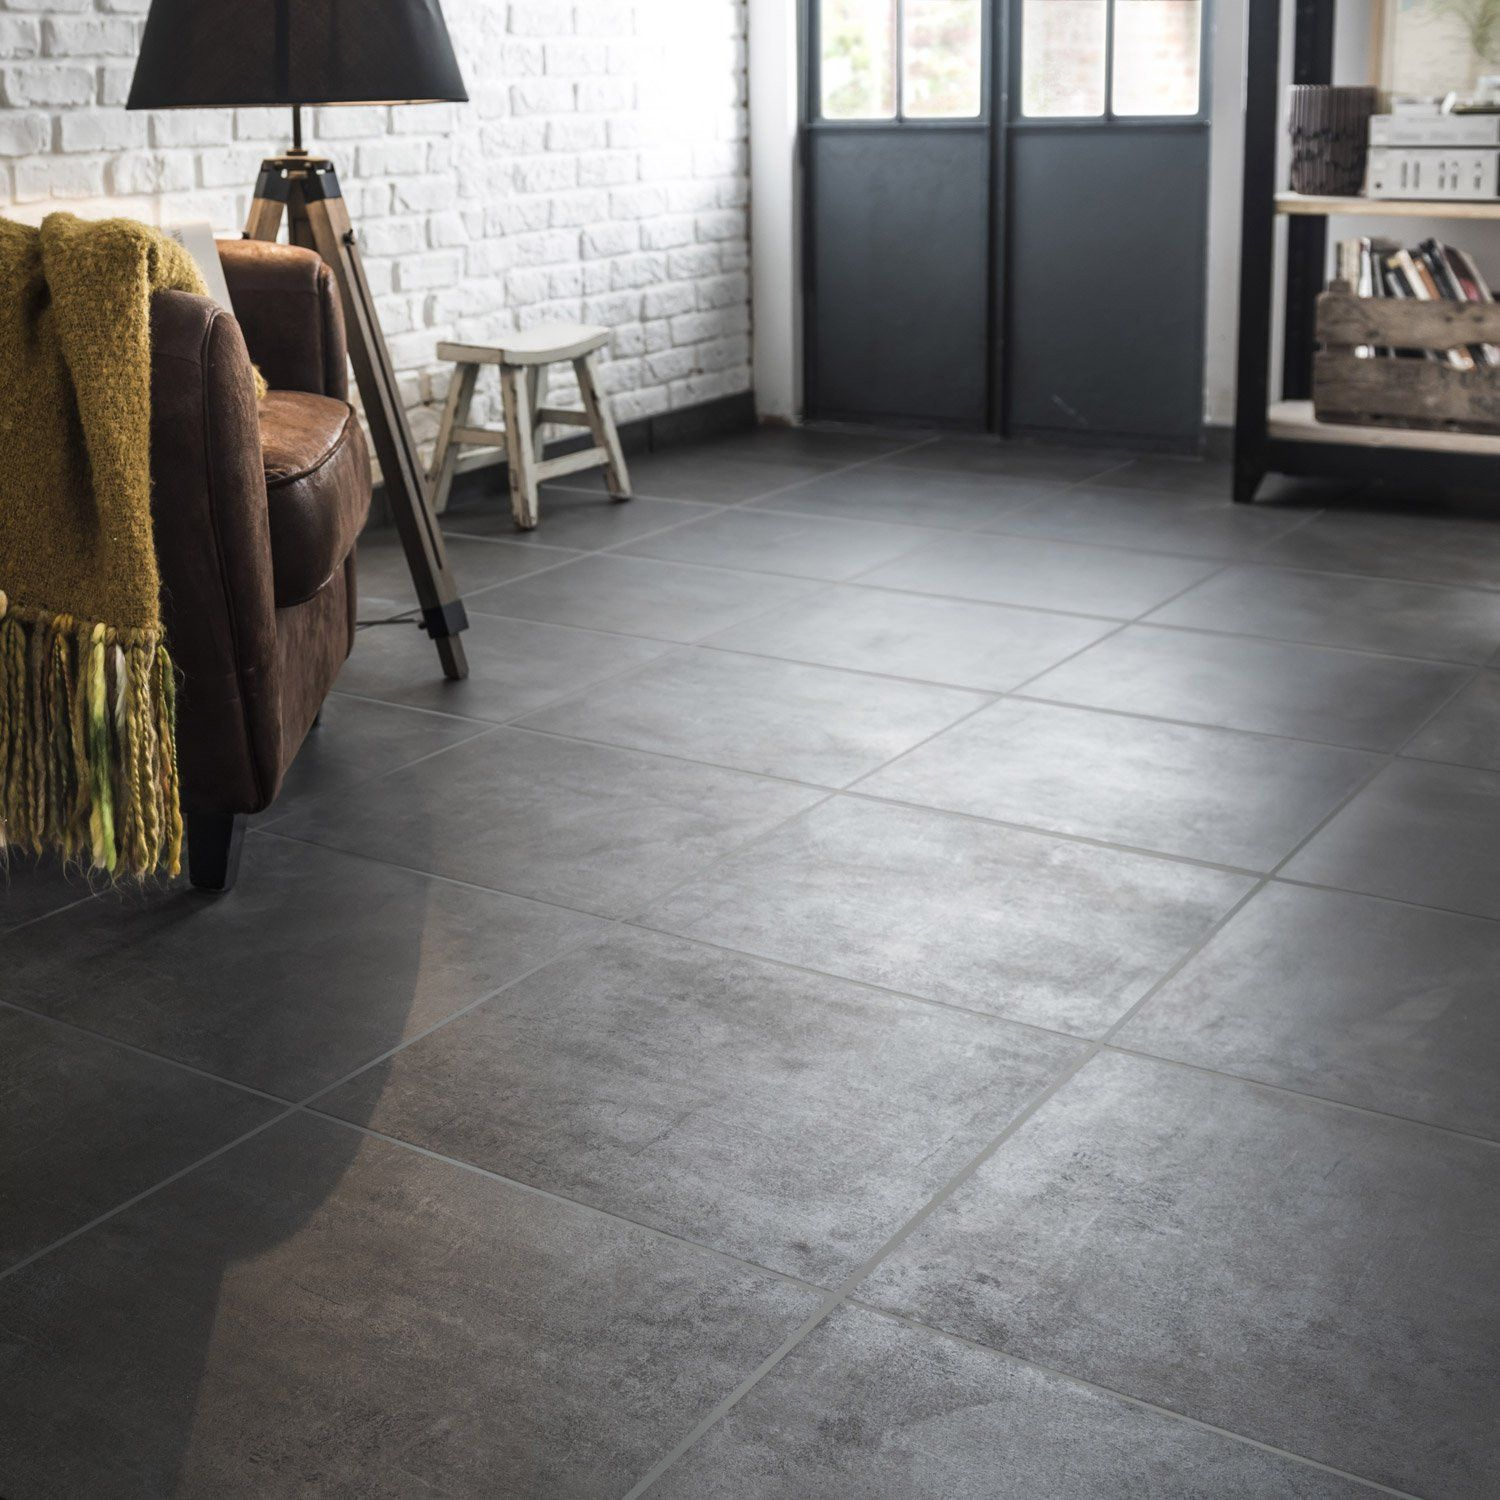 Lovely Sol Beton Cire Leroy Merlin Flooring Floor And Wall Tile Slate Tile Floor